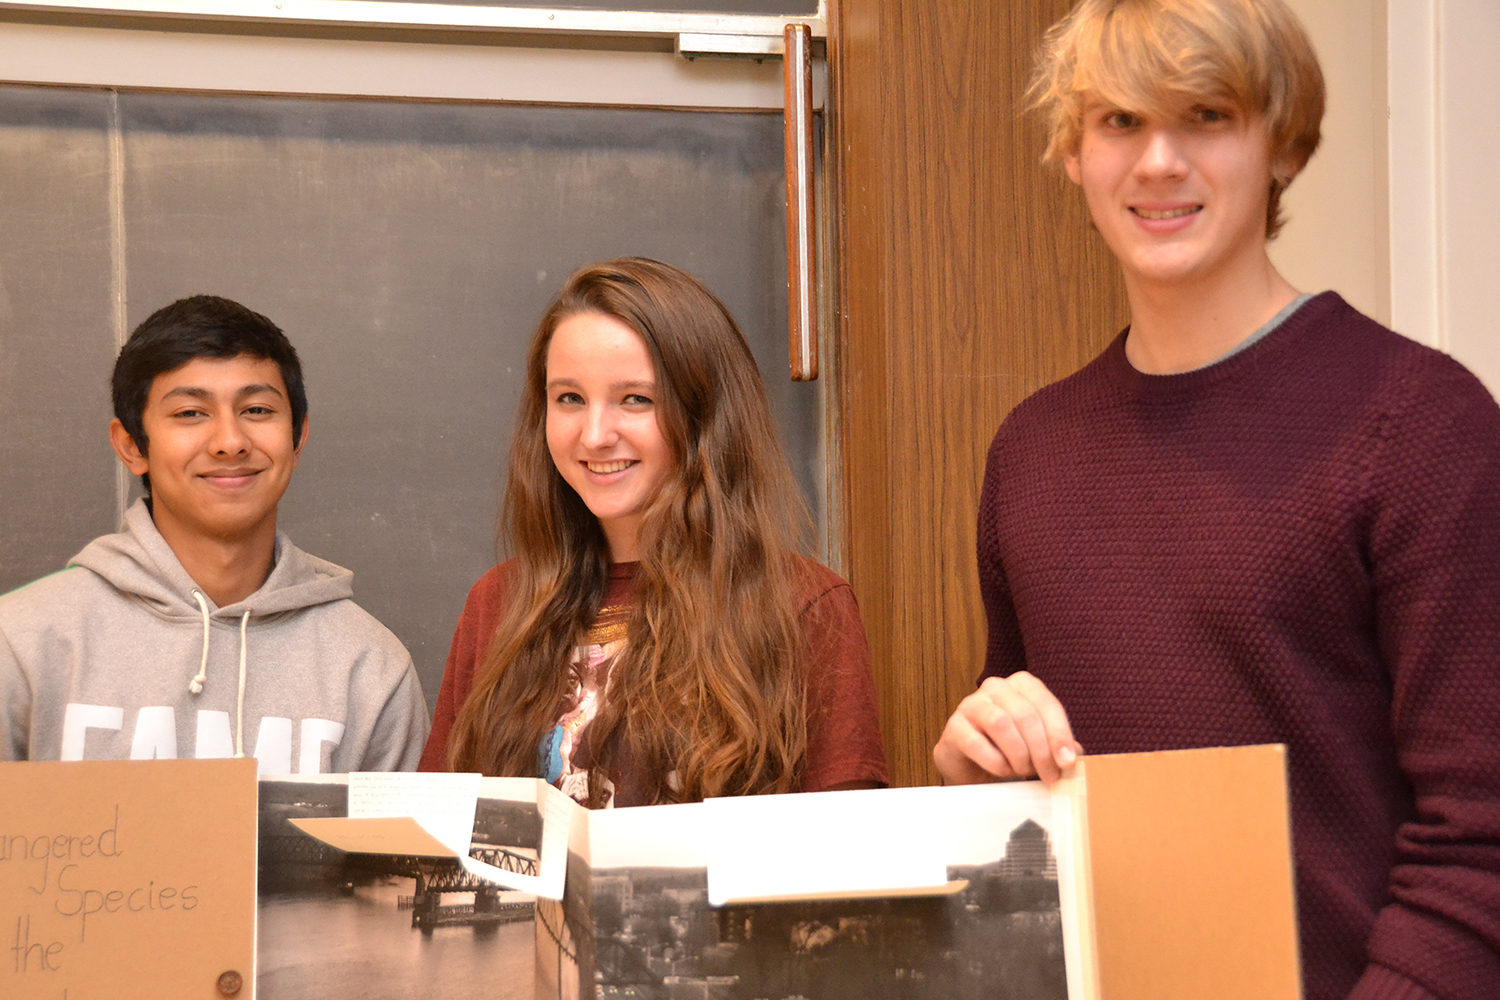 From left, Kush Sharma '18, Emily Blaker '18 and Christopher Wyckoff '18.